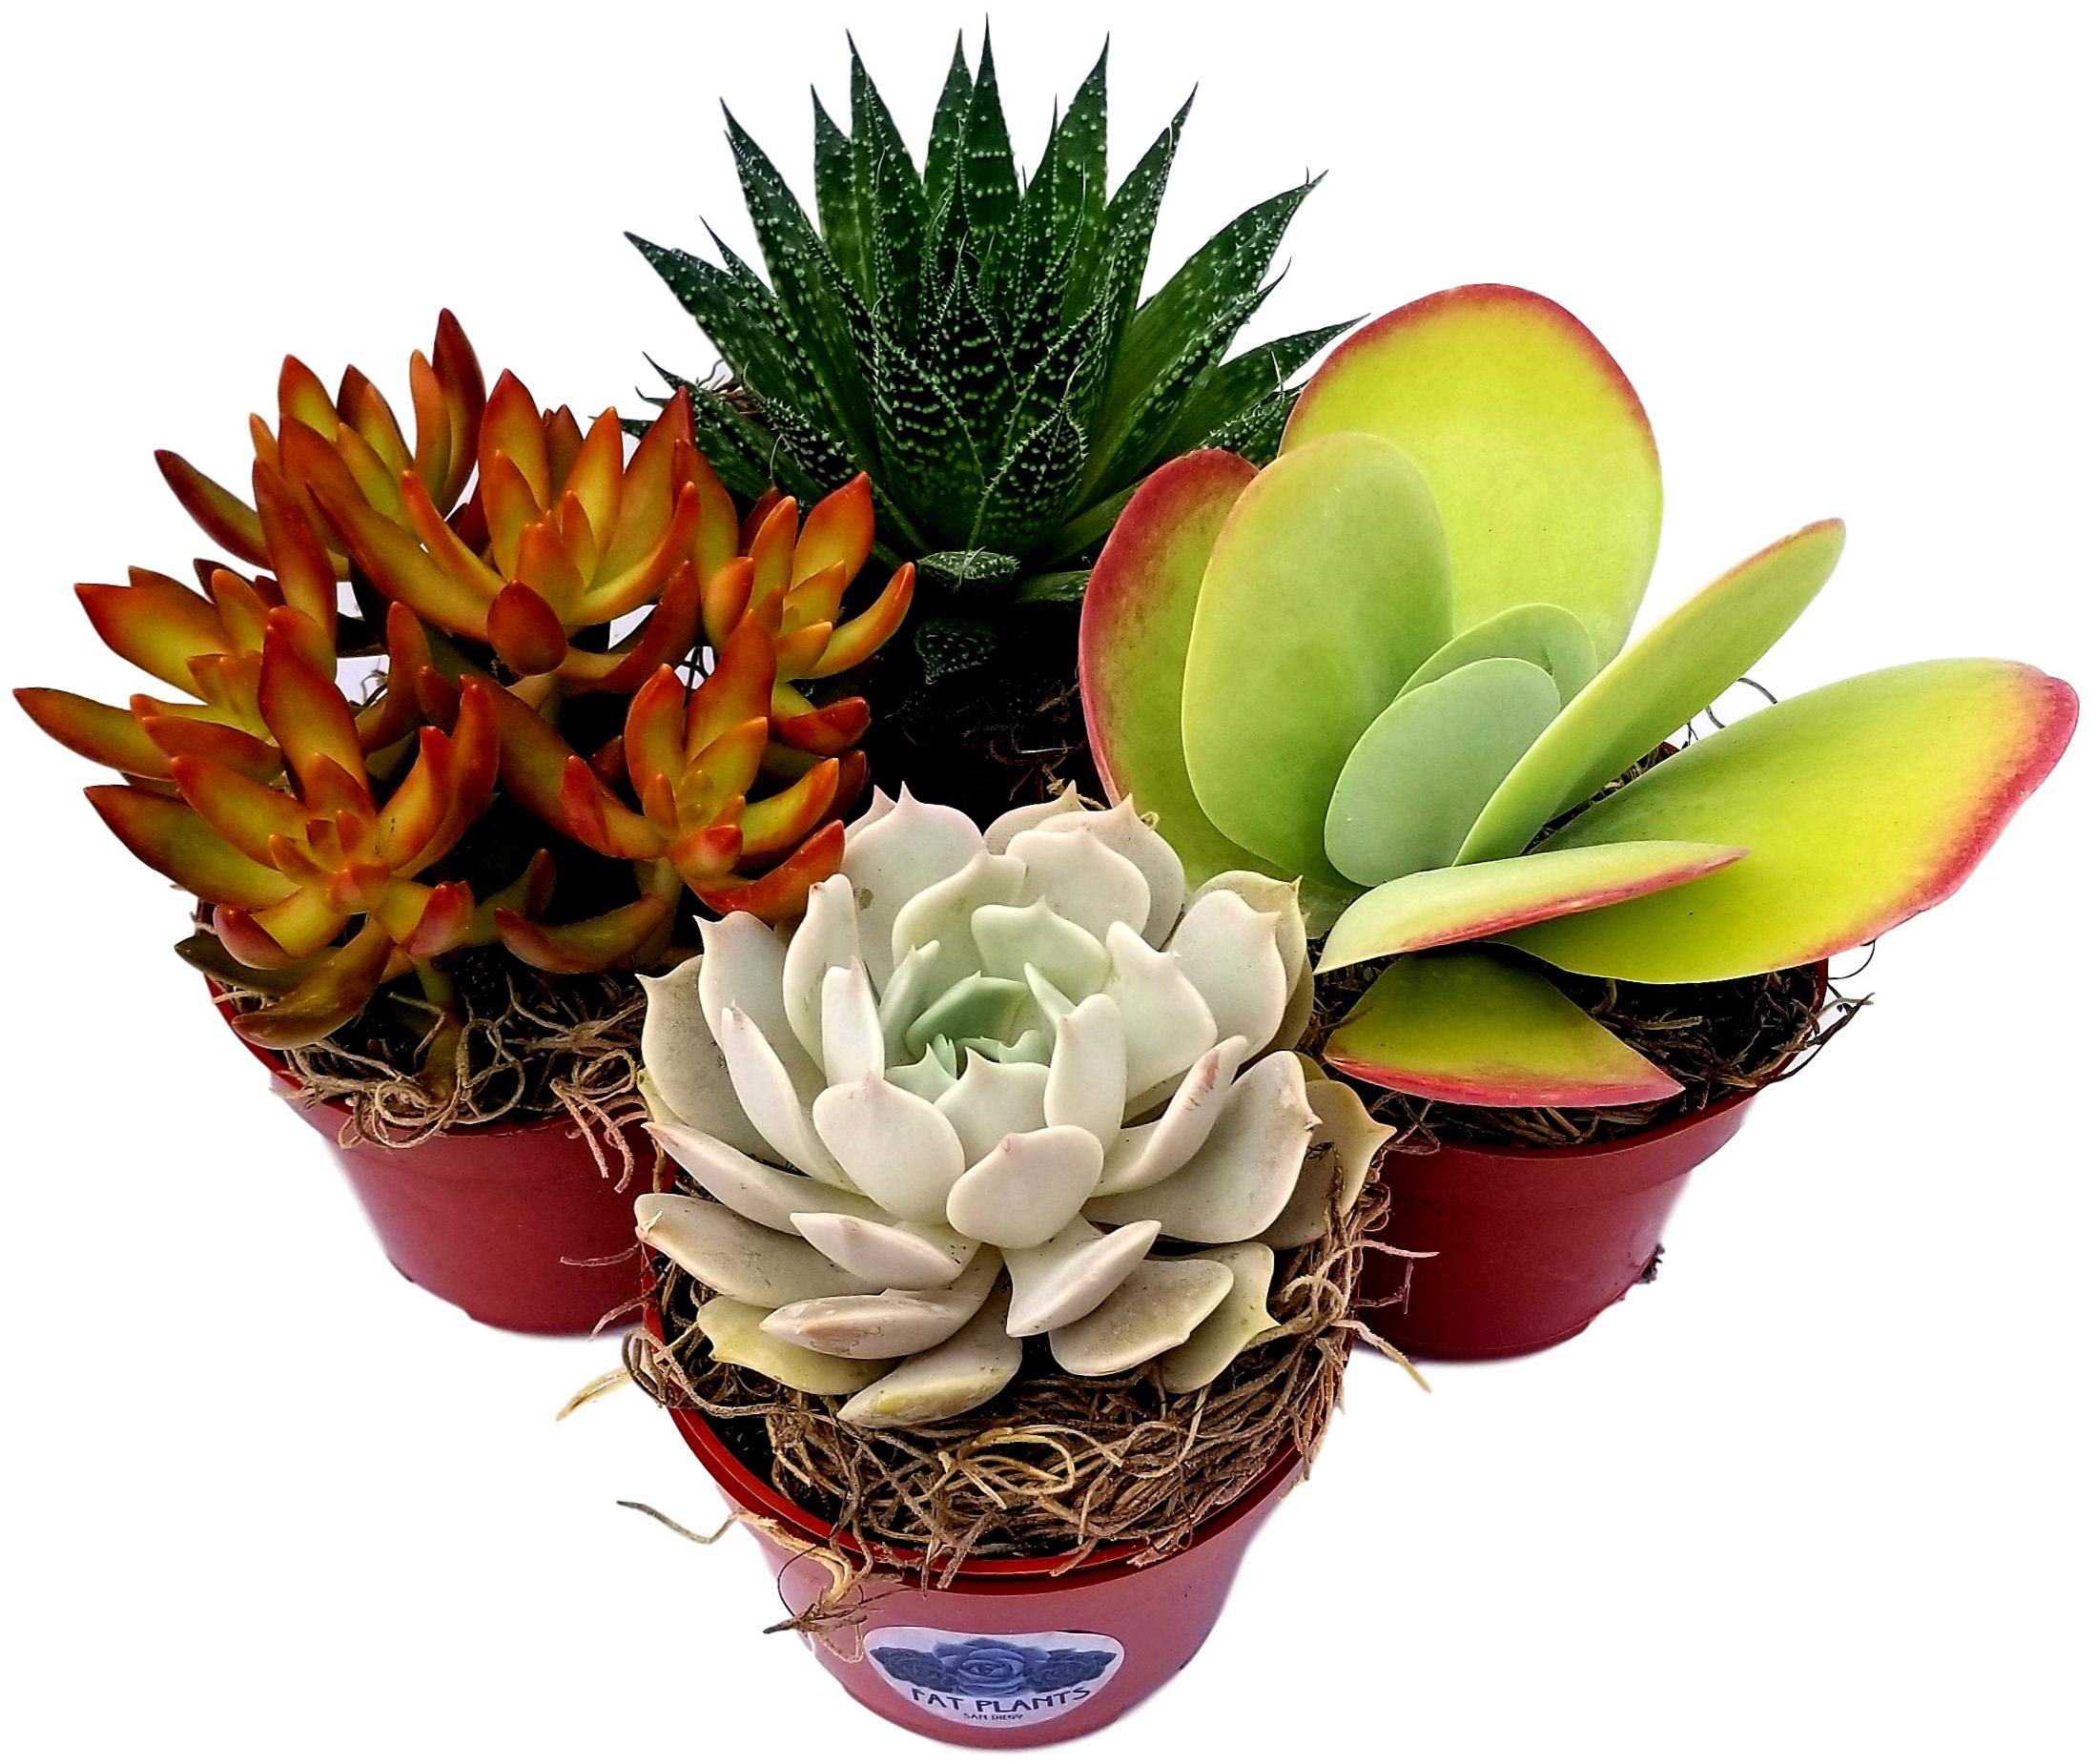 Fat Plants San Diego Live Succulent Plant Variety Collection